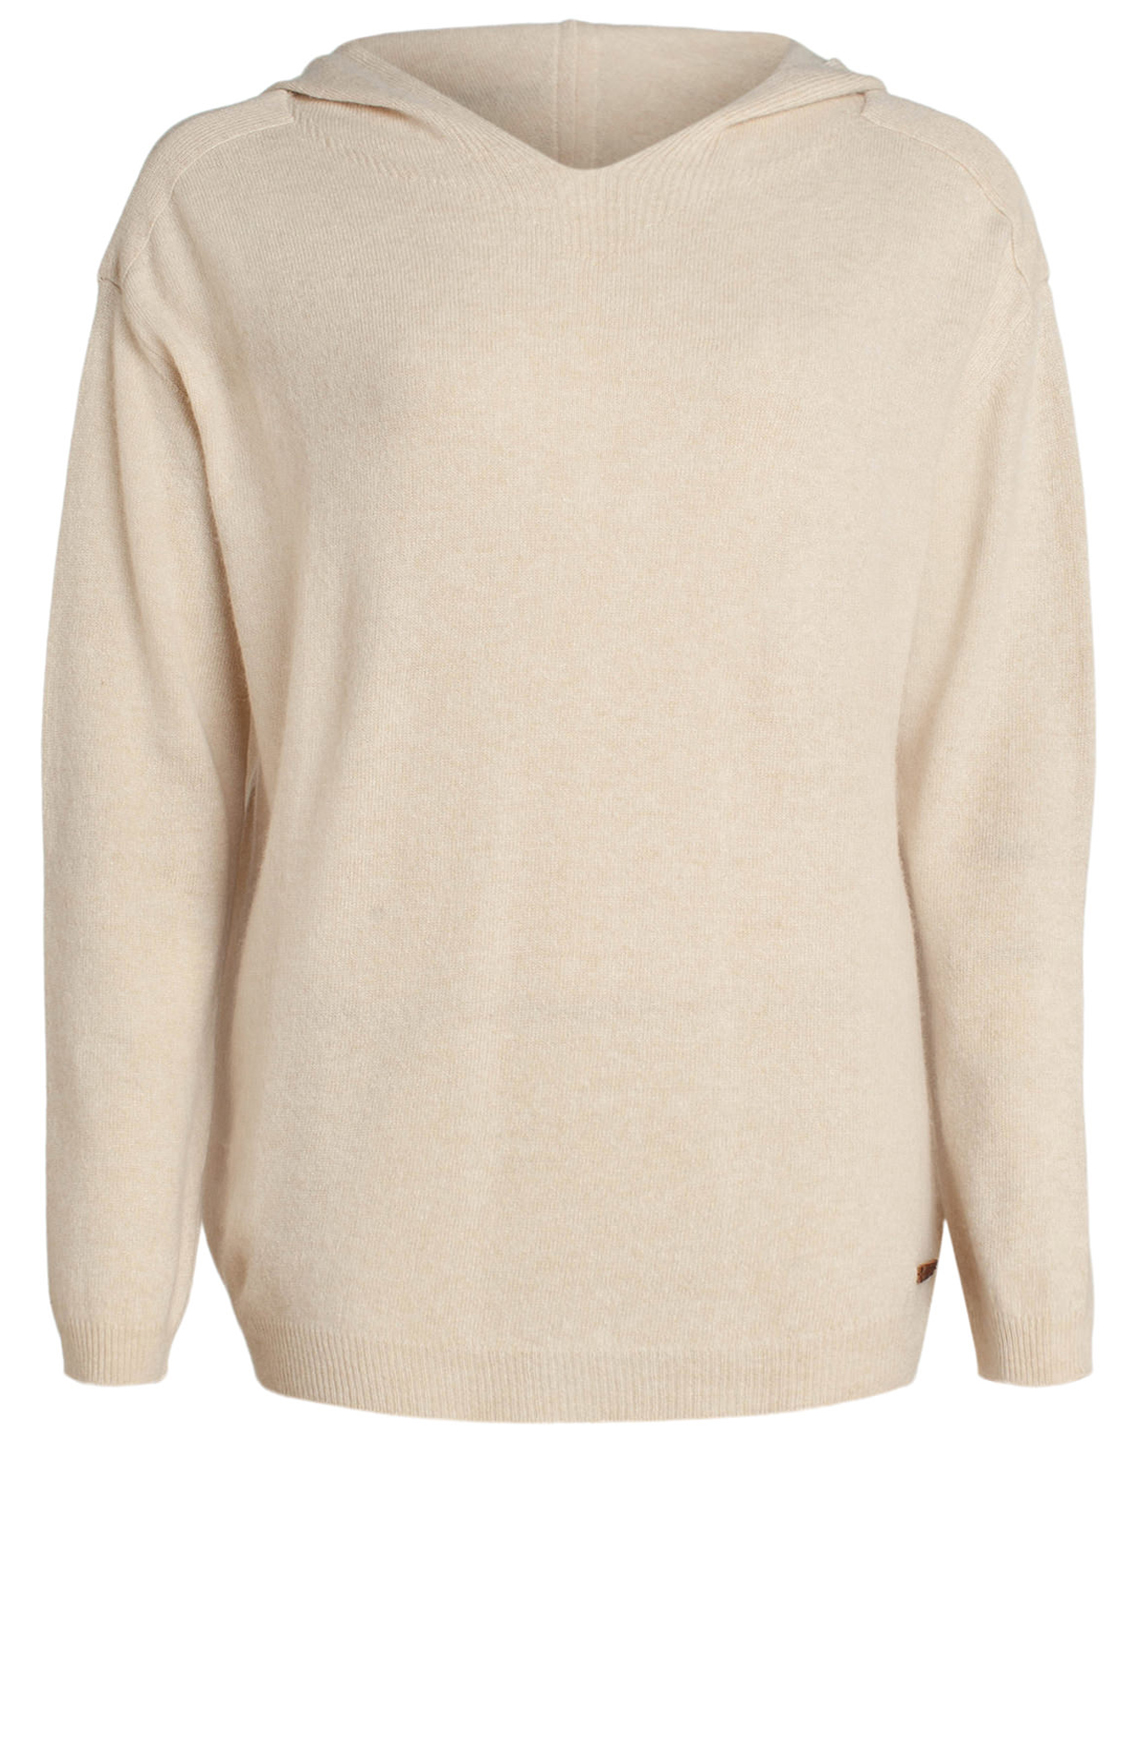 Moscow Dames Pullover met capuchon roze